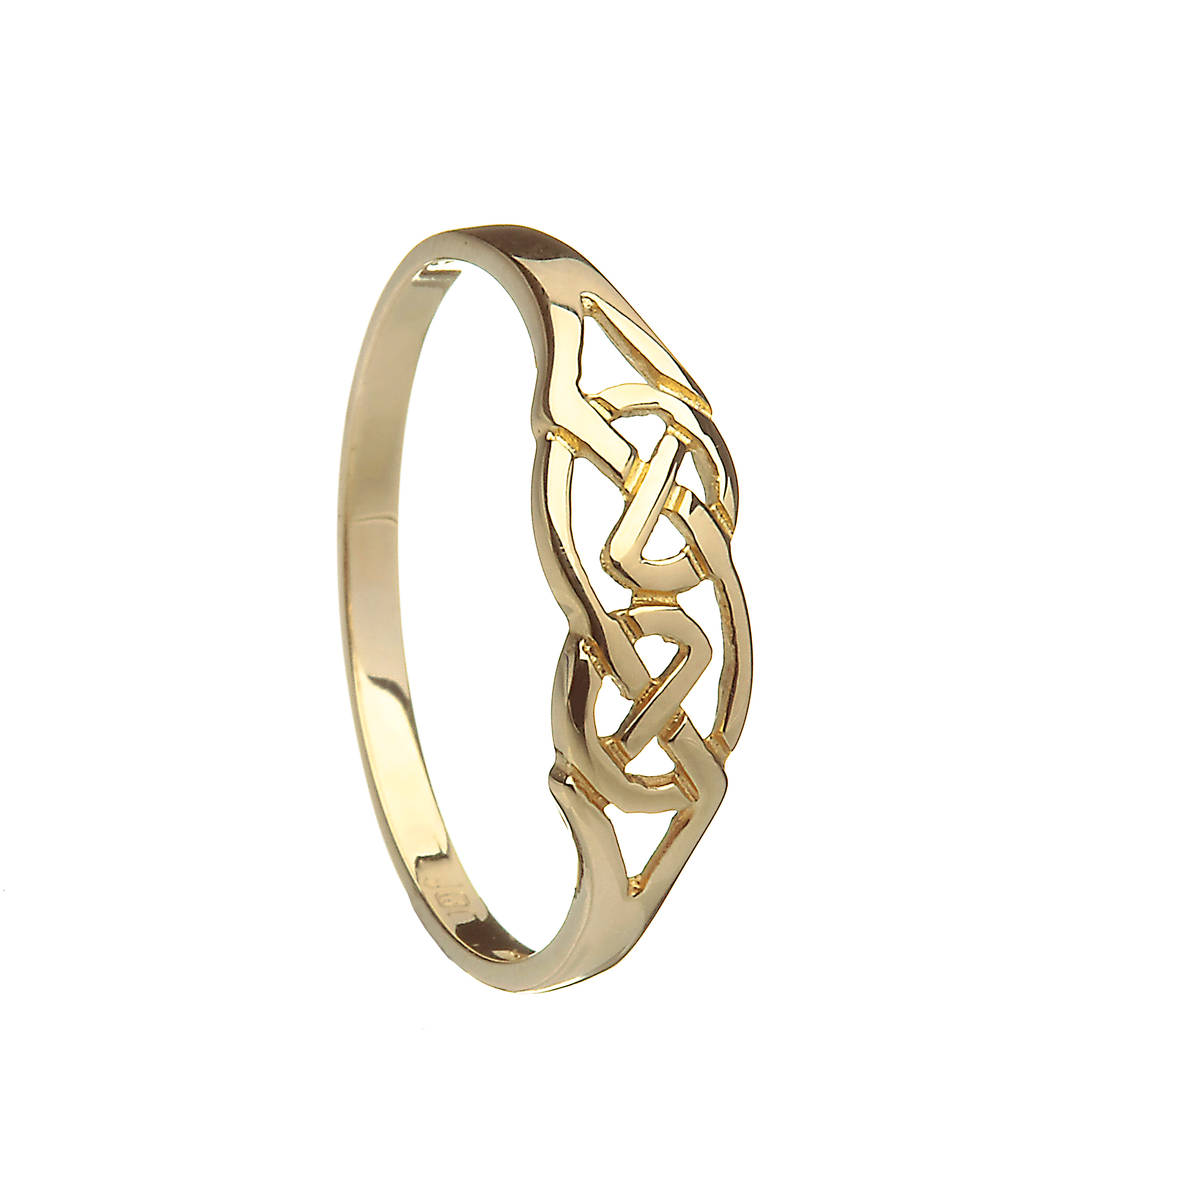 a beautifully crafted classic celtic knot ring